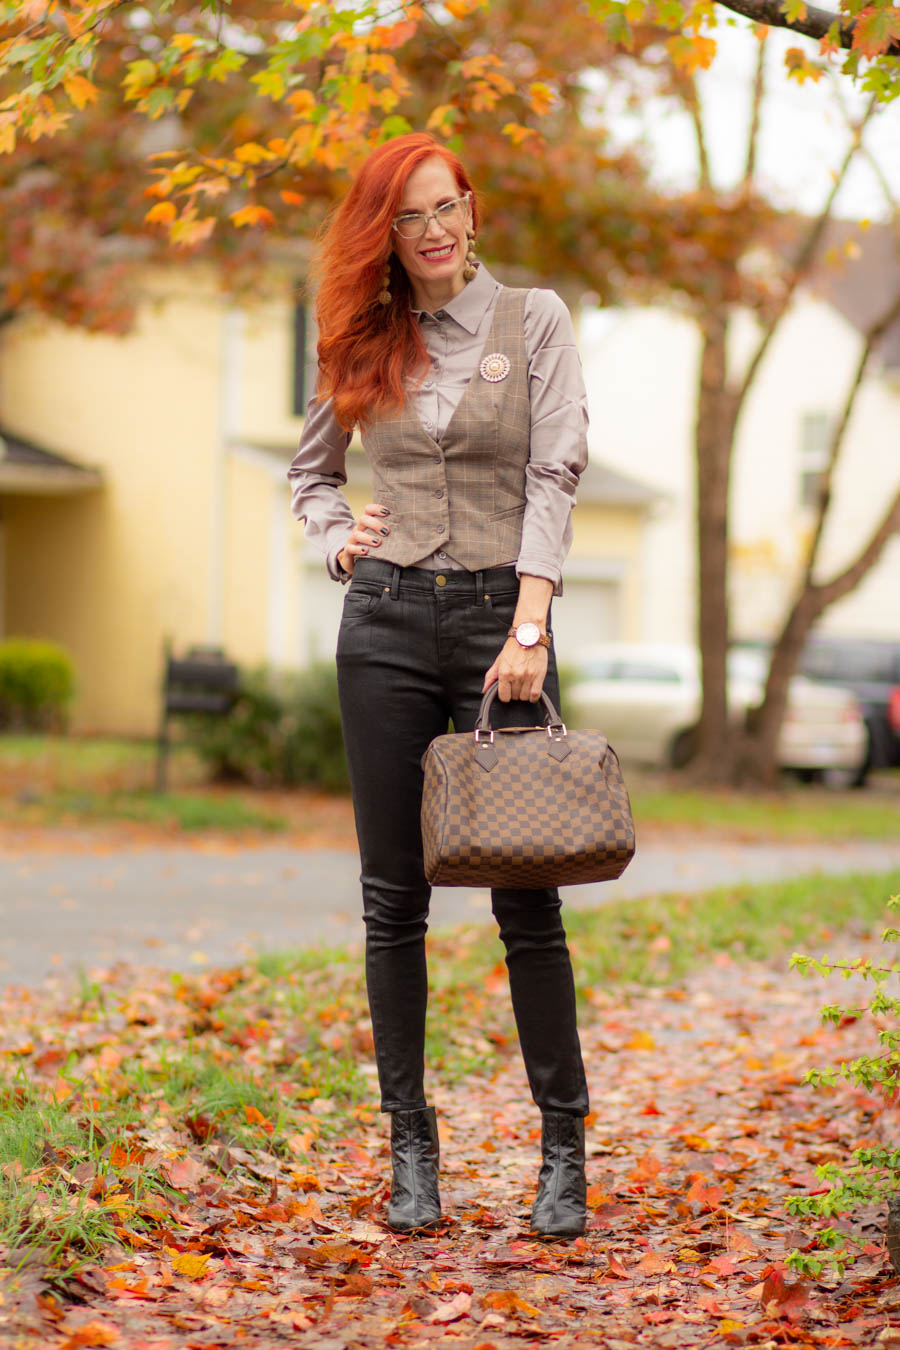 Women's menswear look